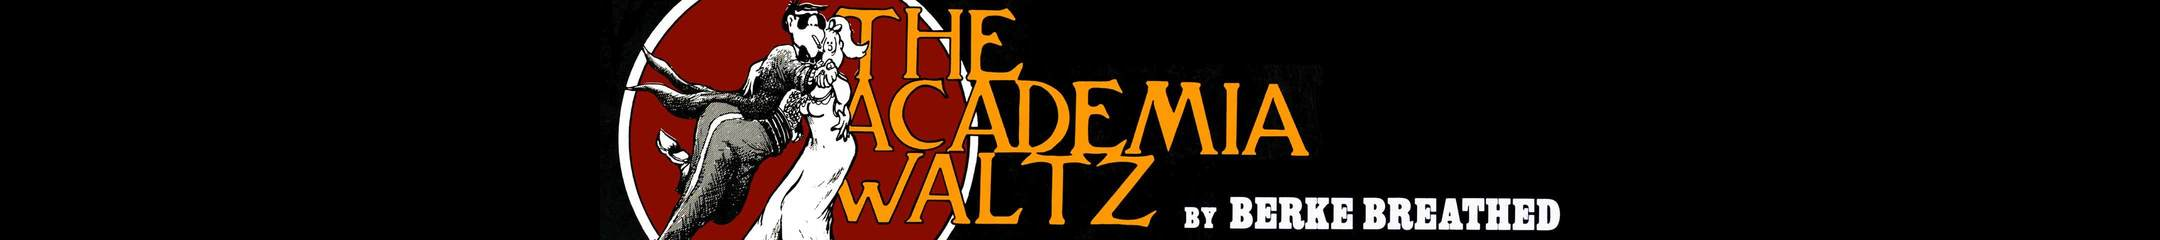 The Academia Waltz